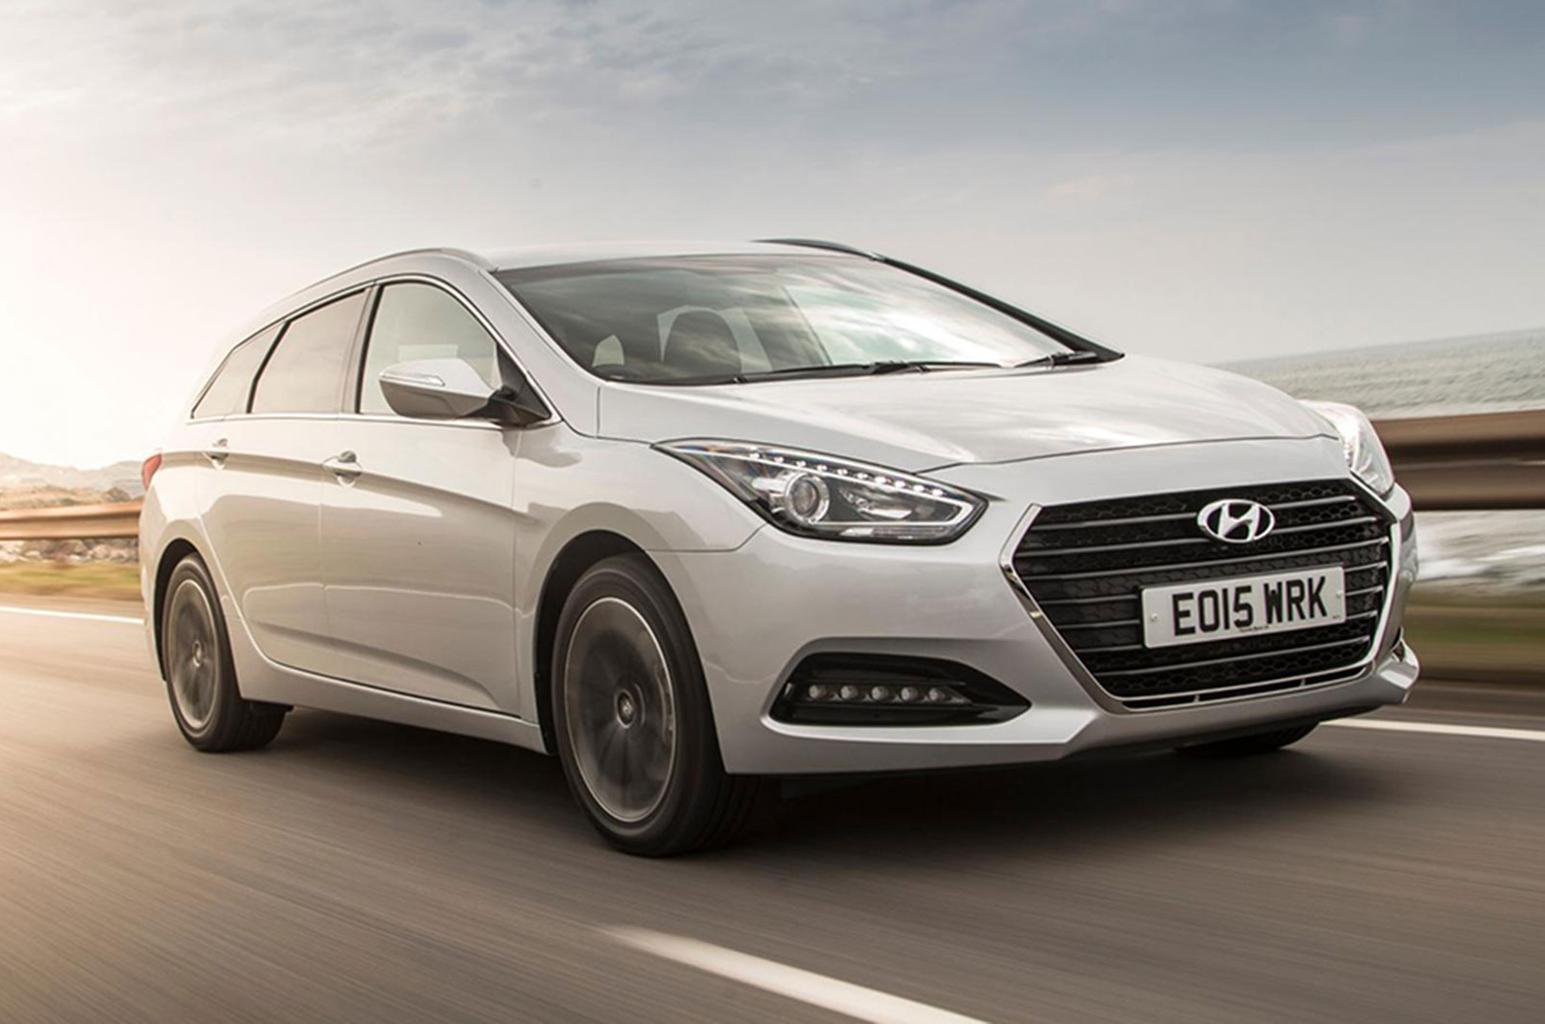 2015 Hyundai i40 - full pricing and specifications